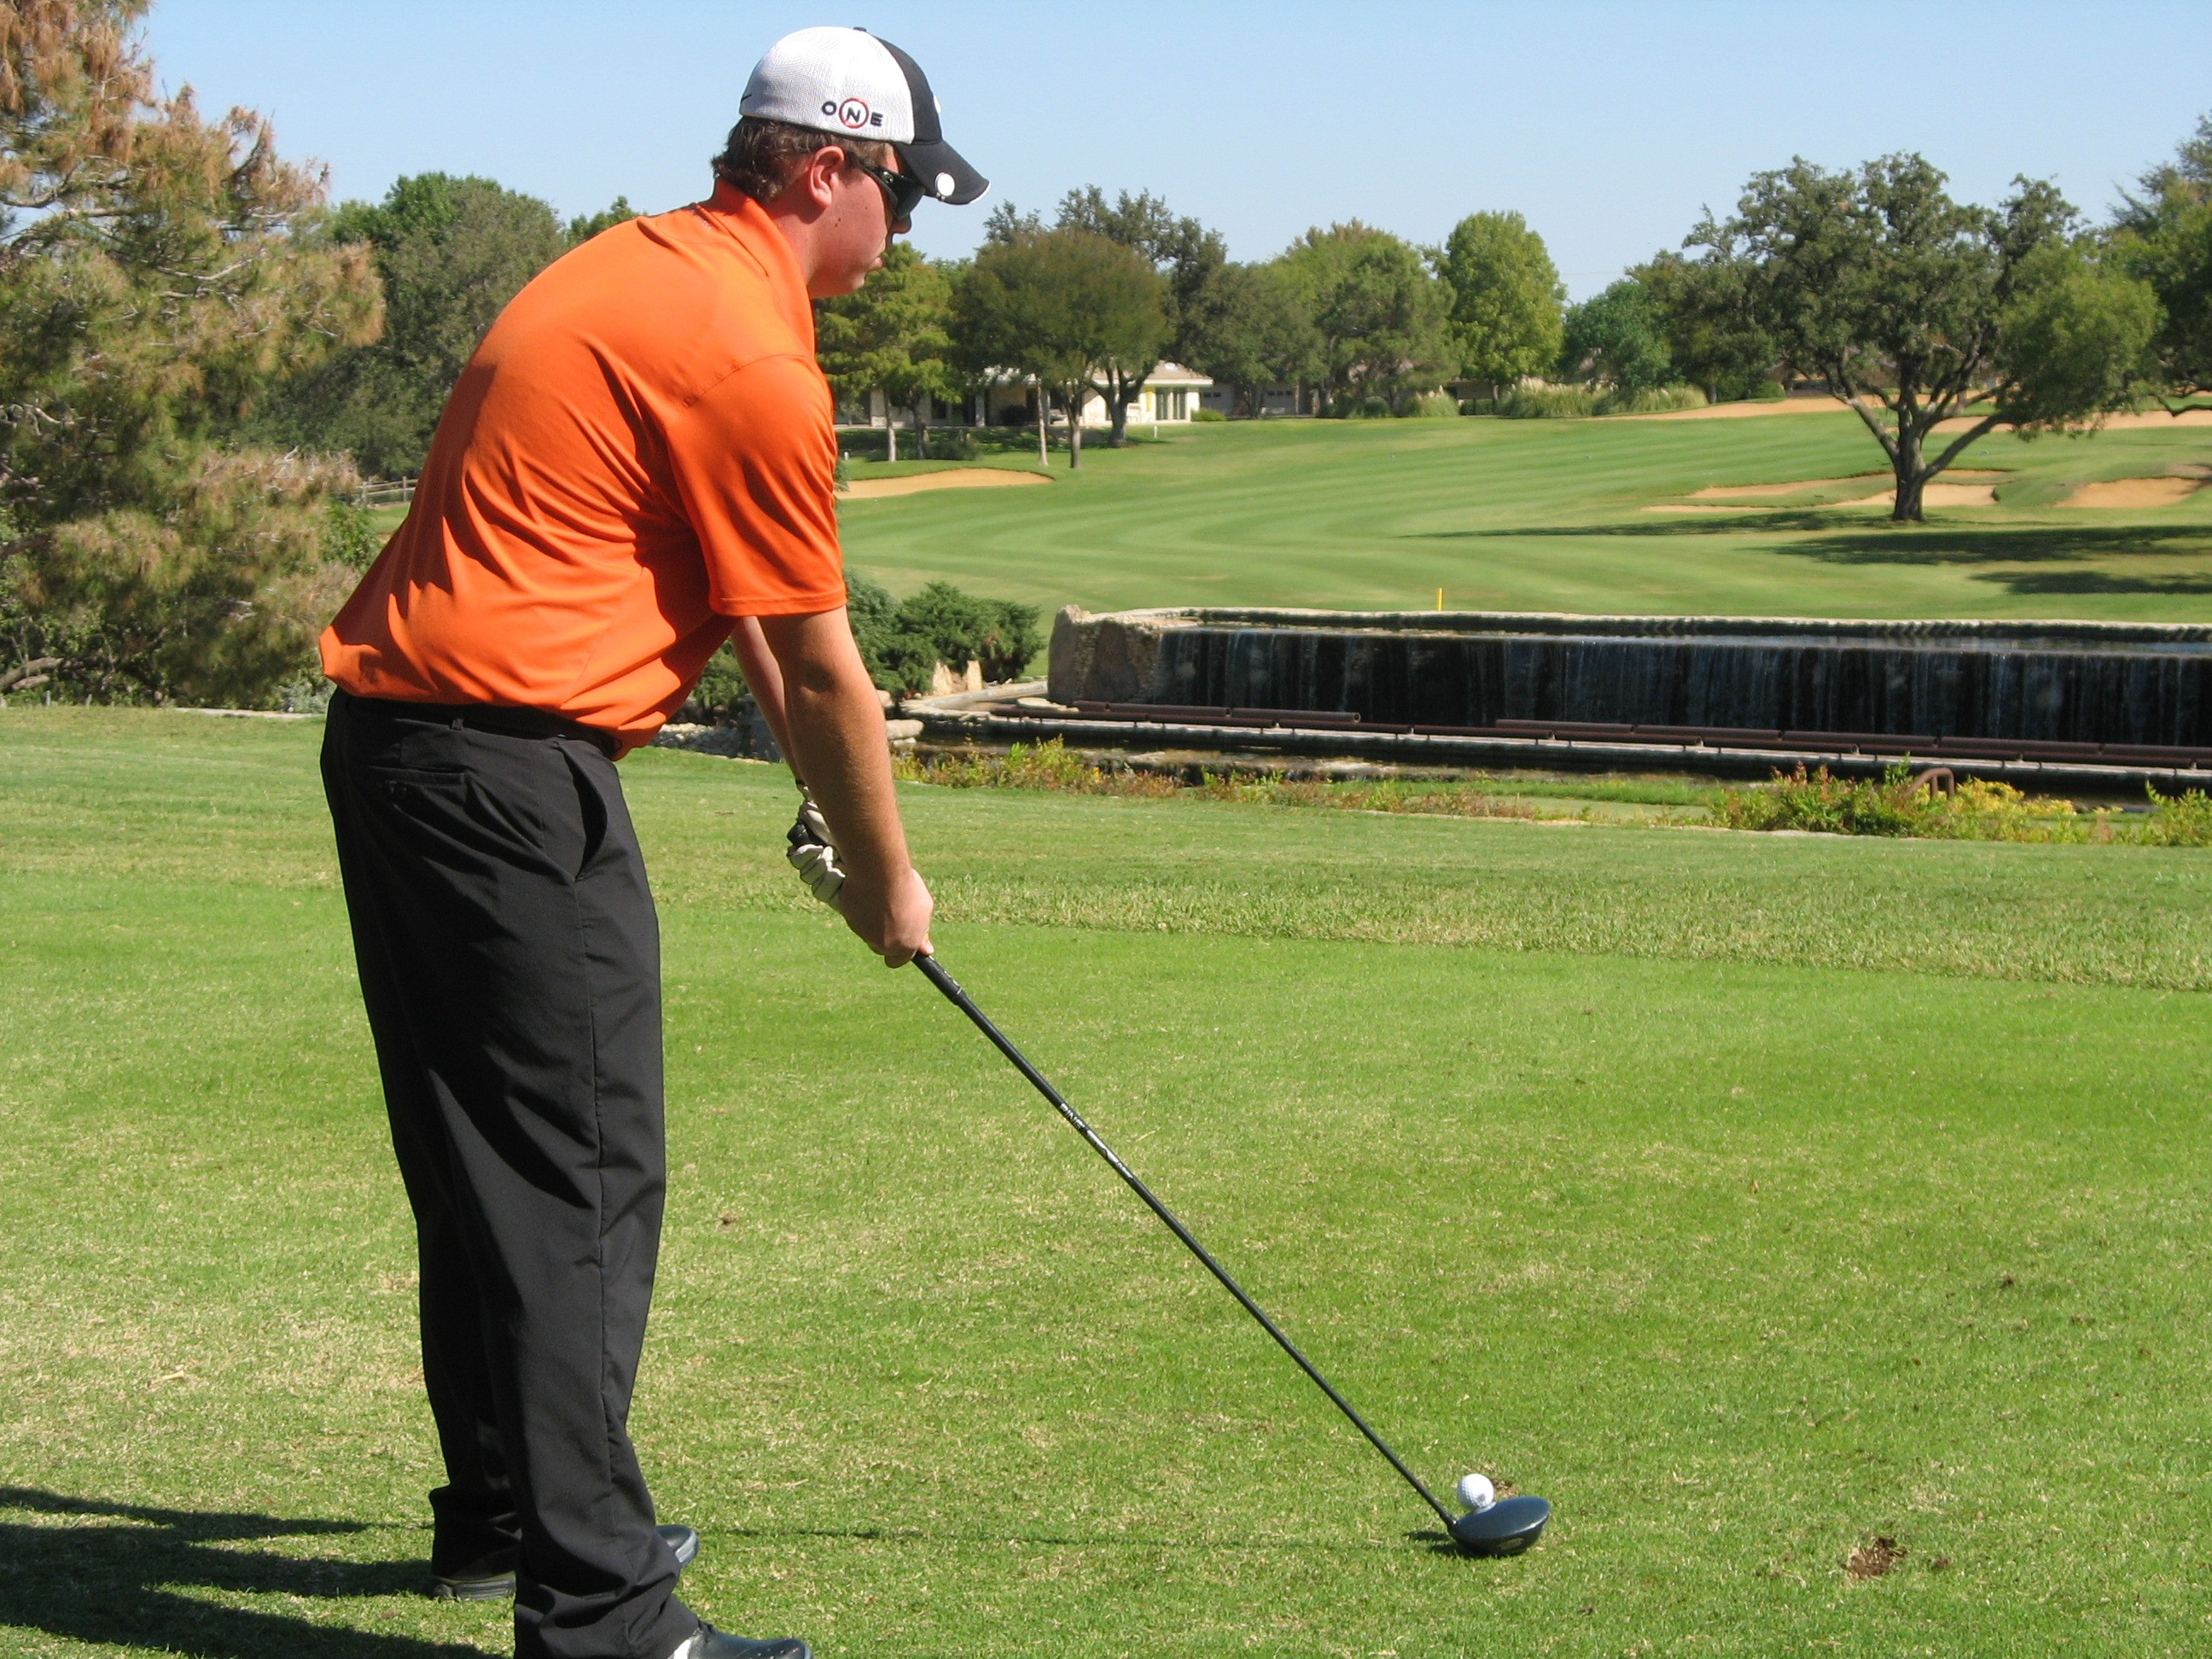 Golfer in an orange shirt about to take a swing